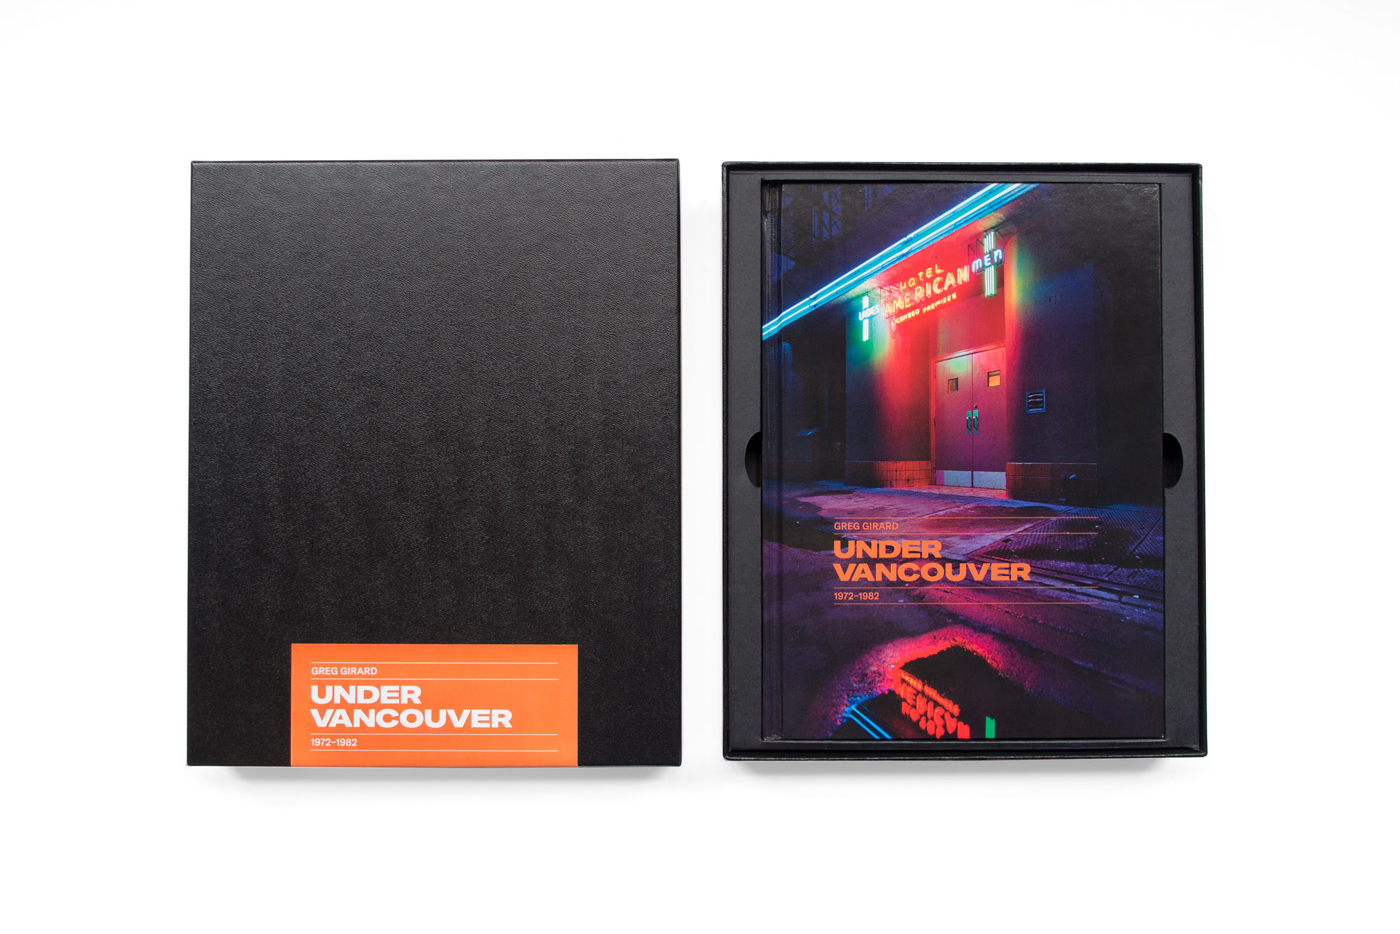 Under Vancouver by Greg Girard Special Edition Boxset